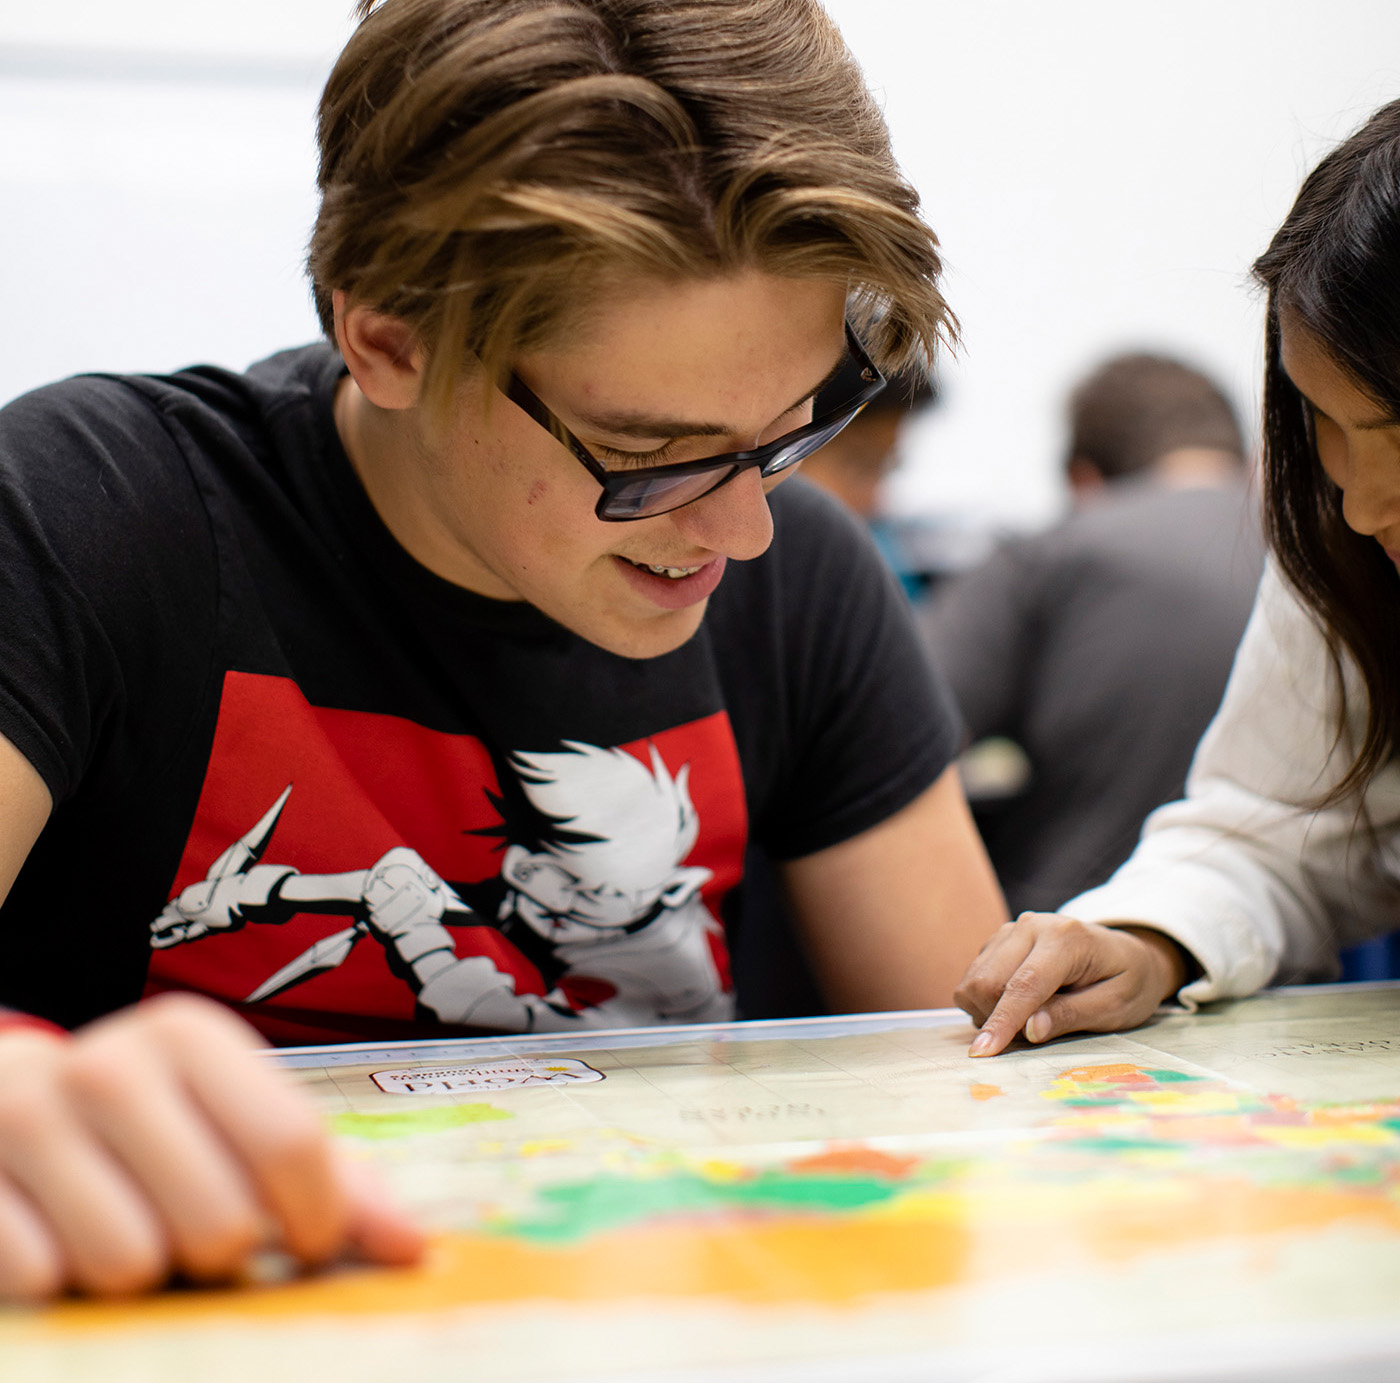 A student smiles while examining a world map.